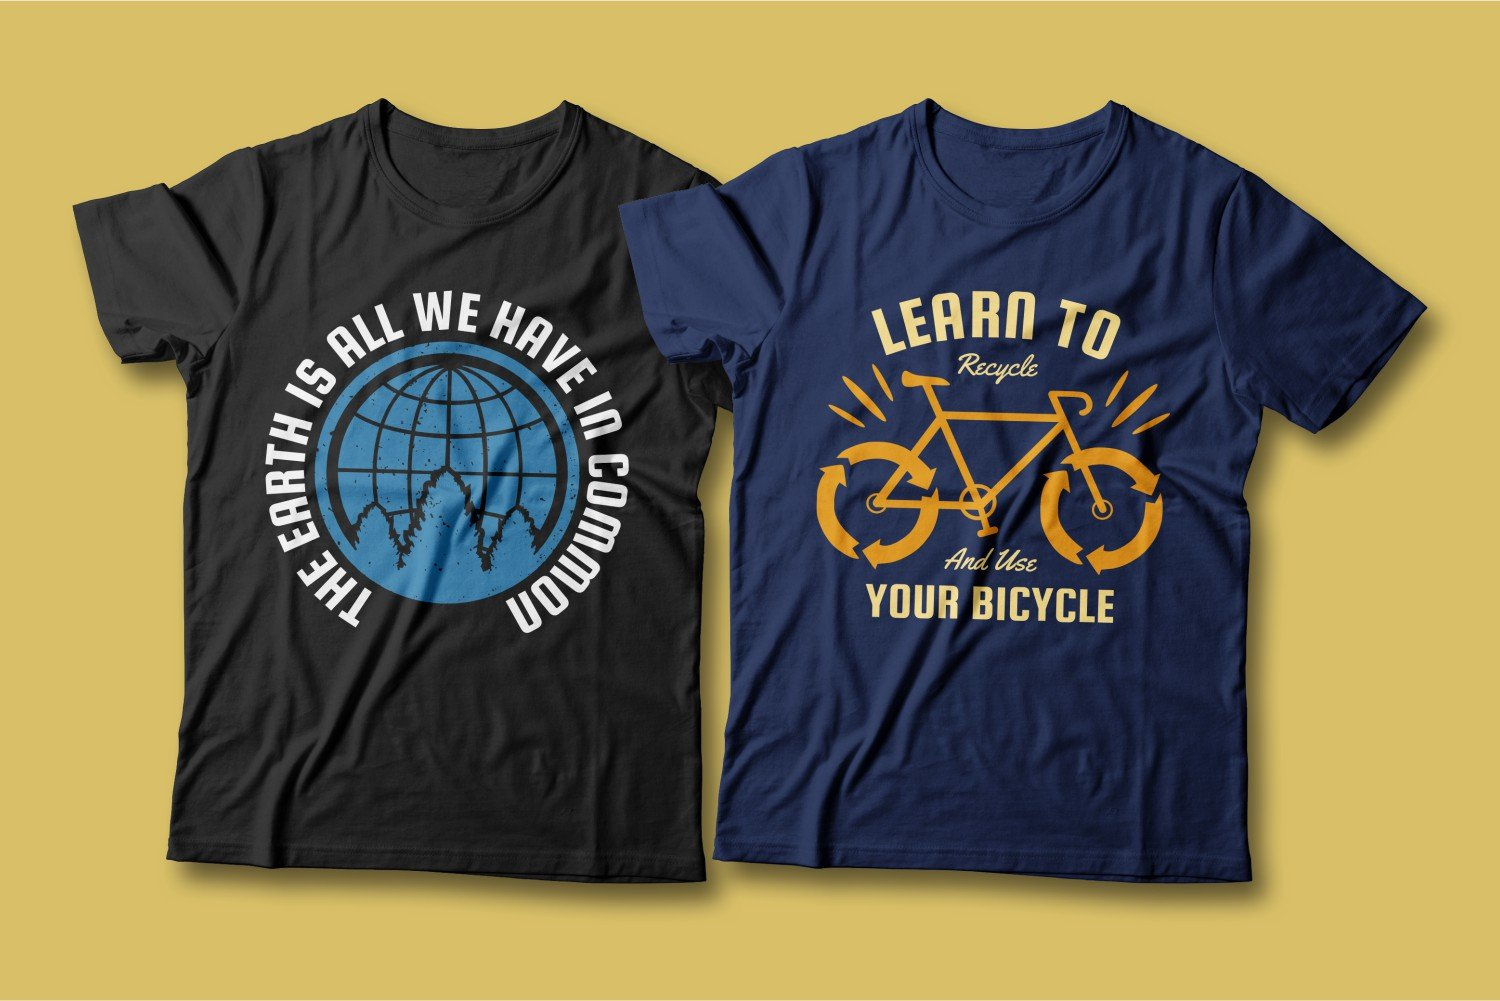 Two T-shirts - one blue, the other black; call for the preservation of nature and a healthy lifestyle.